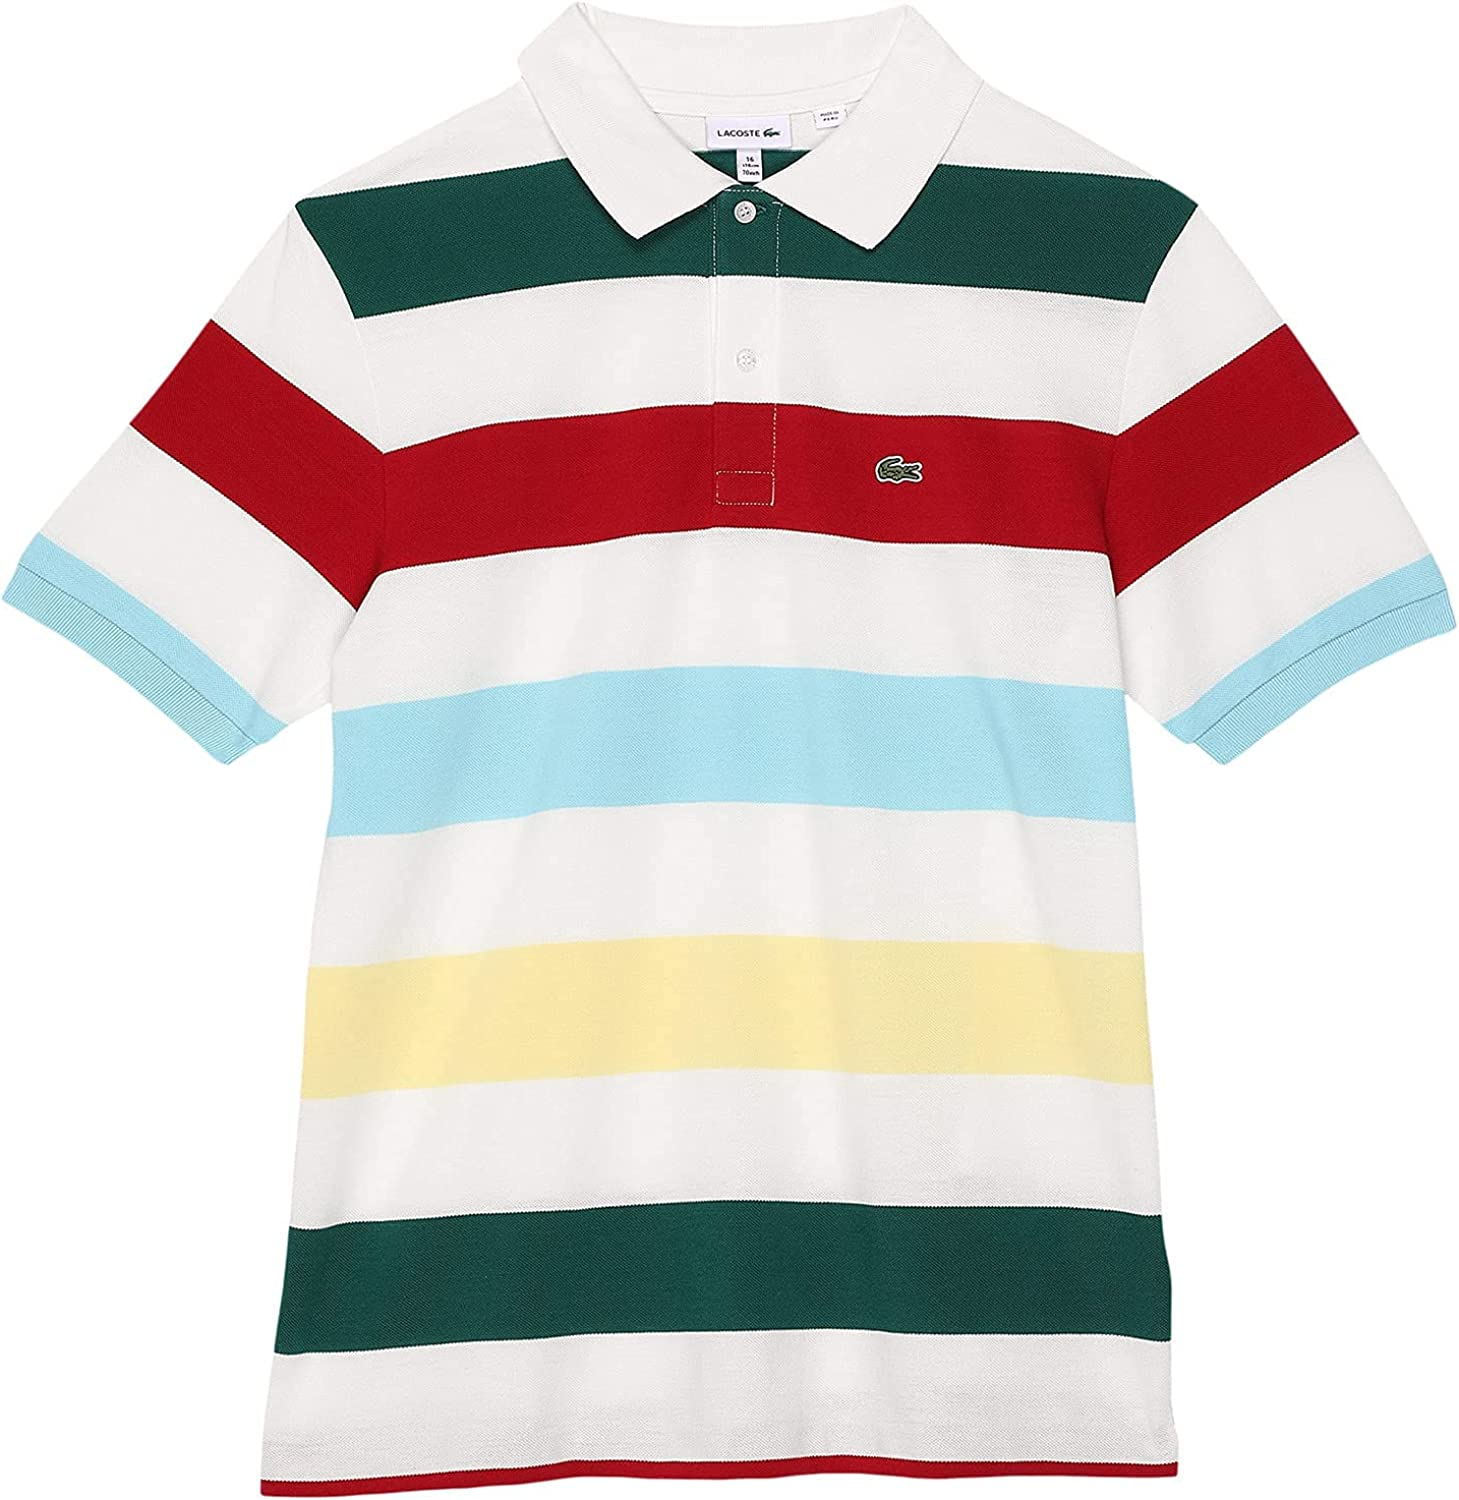 Financial sales sale Lacoste Boy's Short Sleeve Polo Colorblock Striped At the price